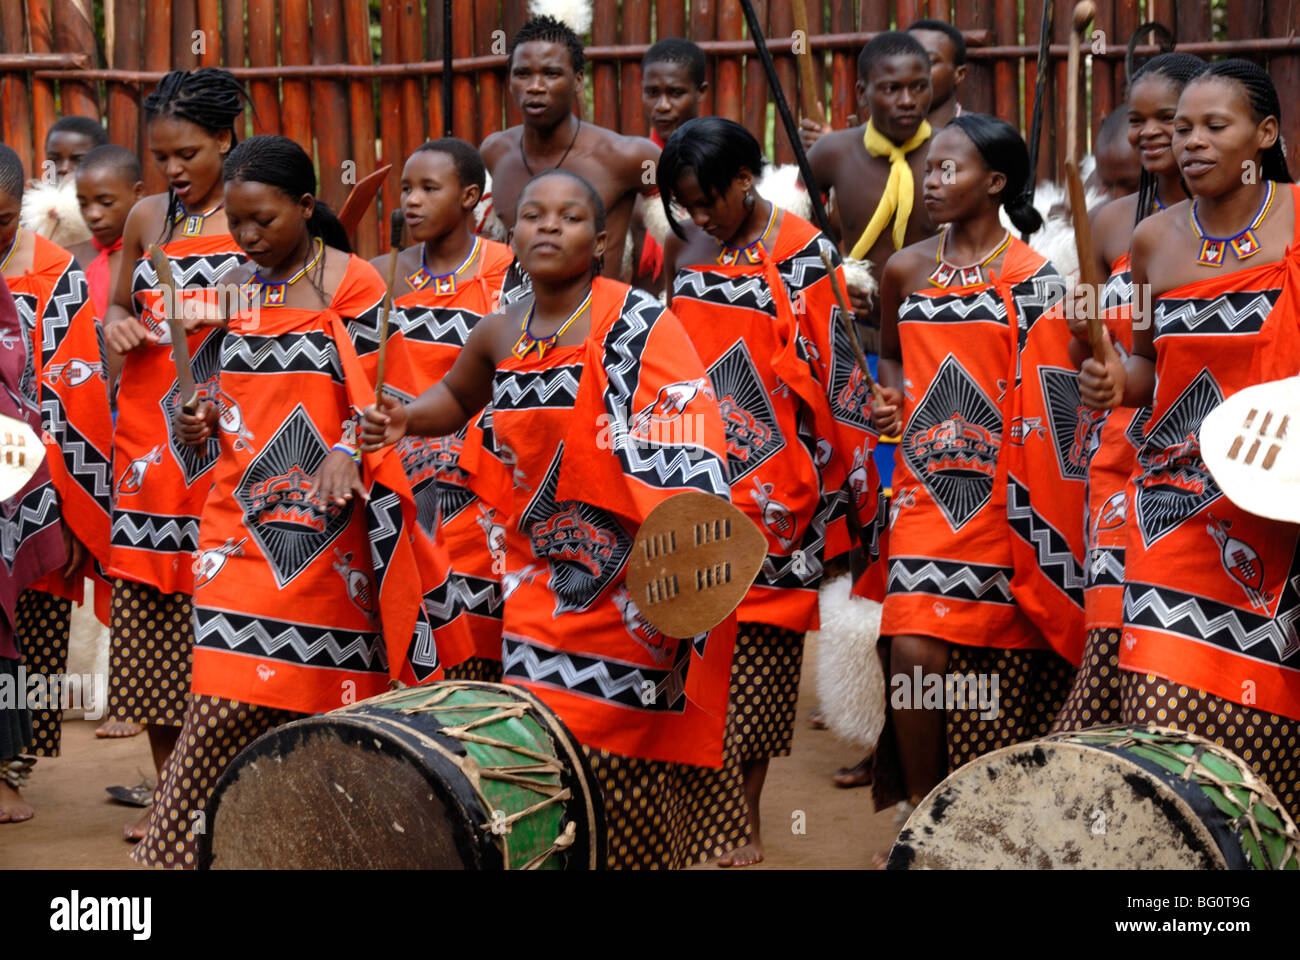 Mantenga Swazi Cultural Village, Swaziland, Africa - Stock Image